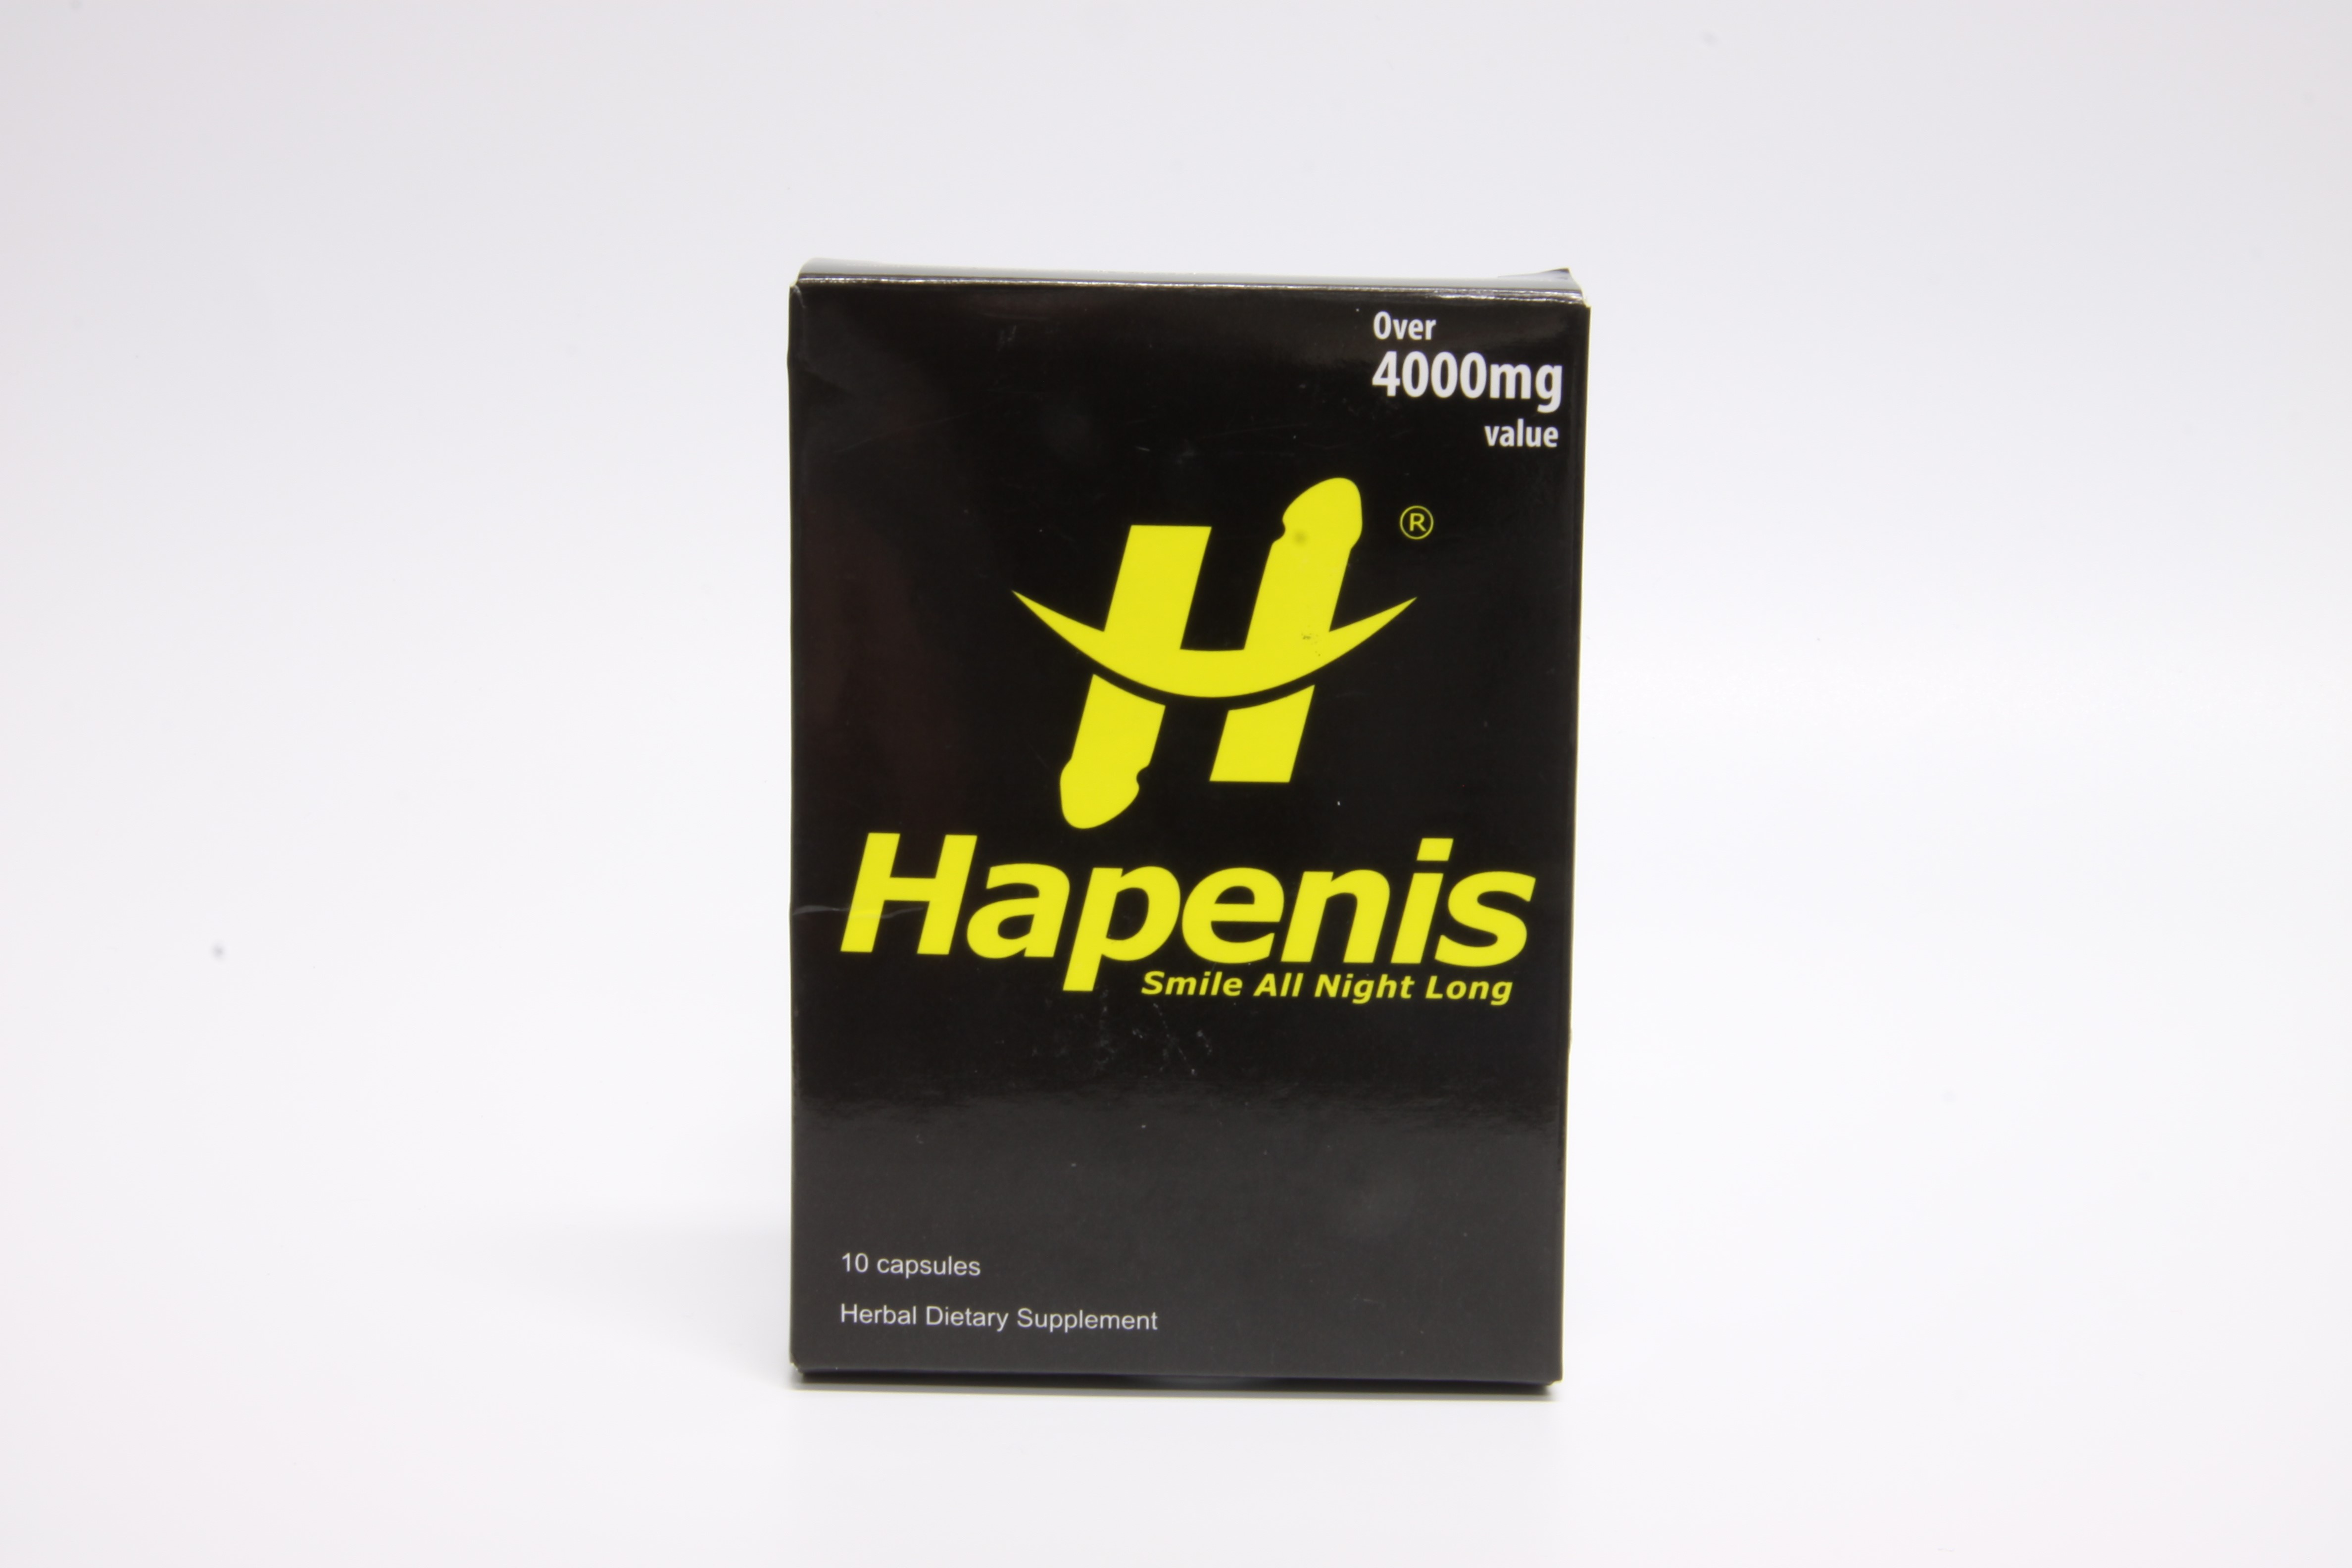 Image of the illigal product: Hapenis